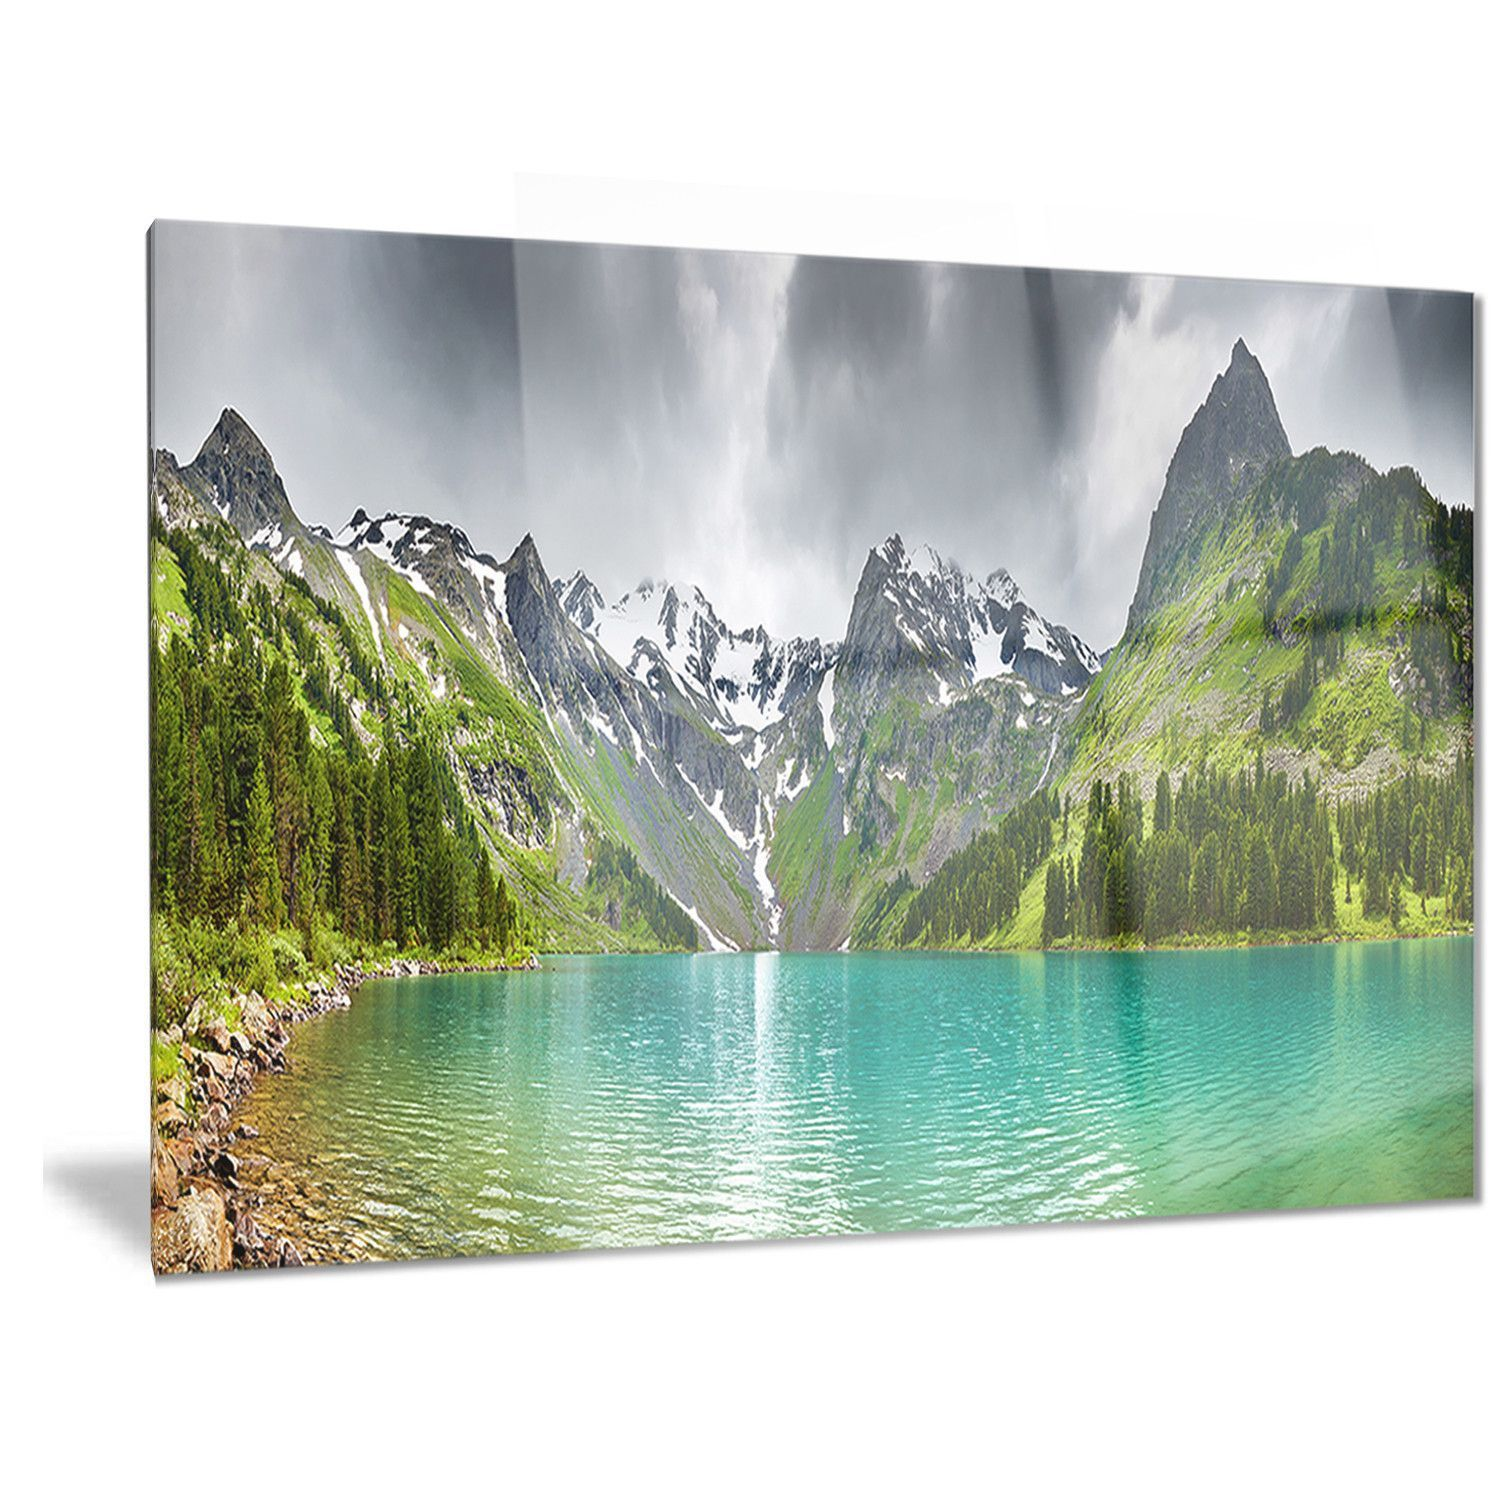 GREEN MOUNTAIN LAKE PANORAMIC LANDSCAPE CANVAS PRINT PICTURE WALL ART